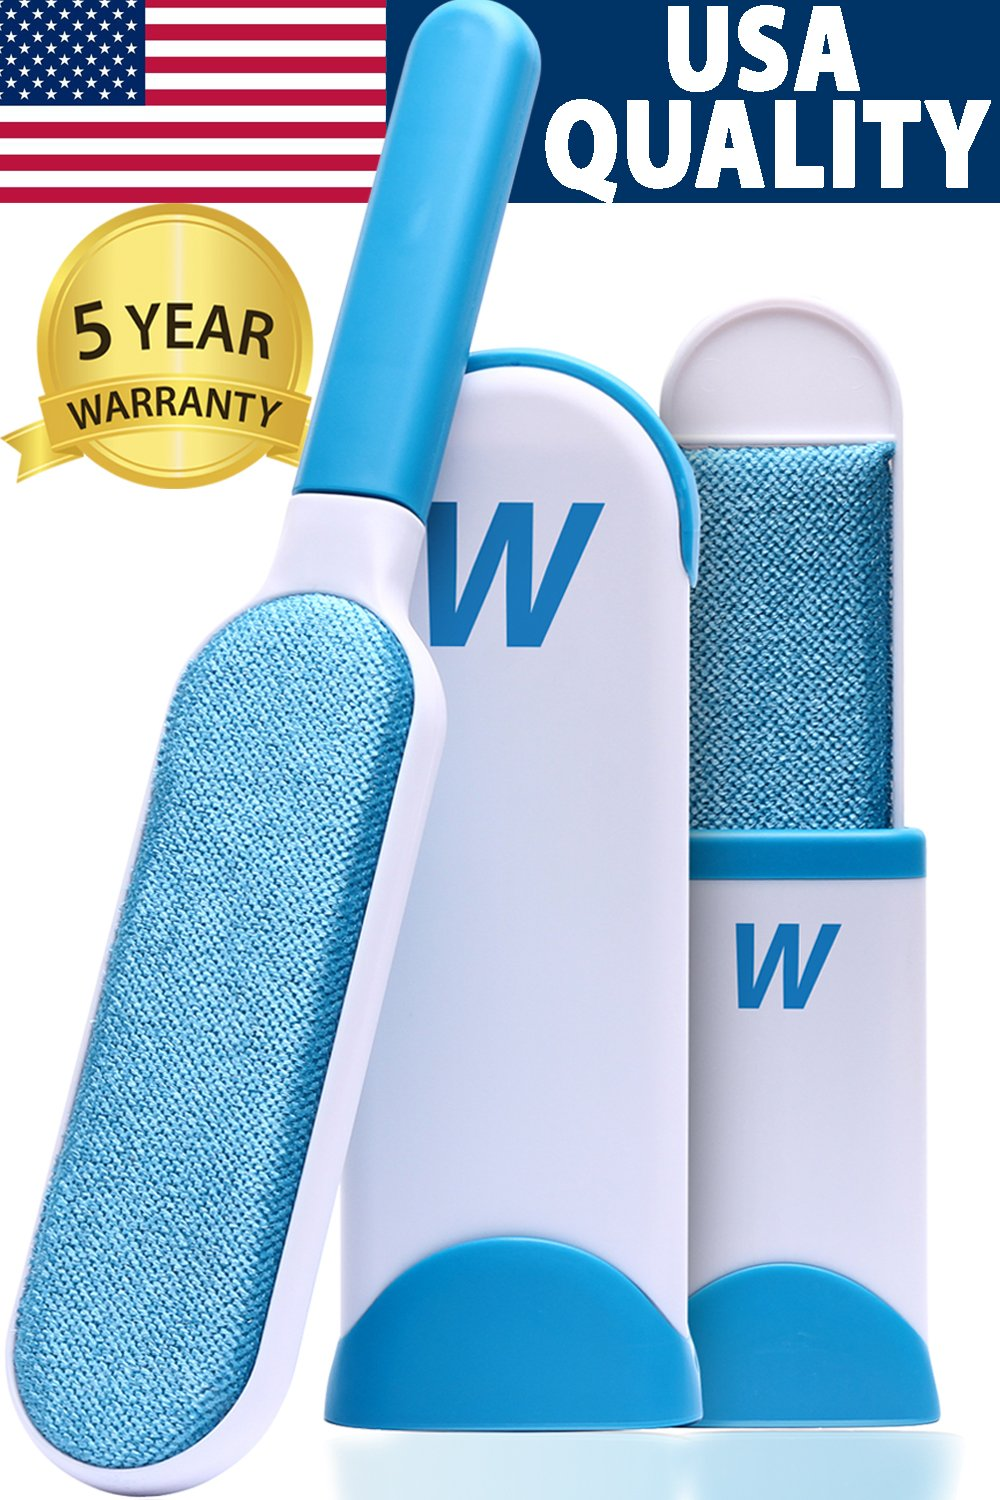 WELLTED Pet Hair Remover Brush - Lint Brush - Fur Remover - Fur & Lint Removal - Dog & Cat Hair Remover - Double-Sided Brush with Self-Cleaning Base - for Furniture Clothing Bed Car Seat - Best Gift by WELLTED (Image #1)